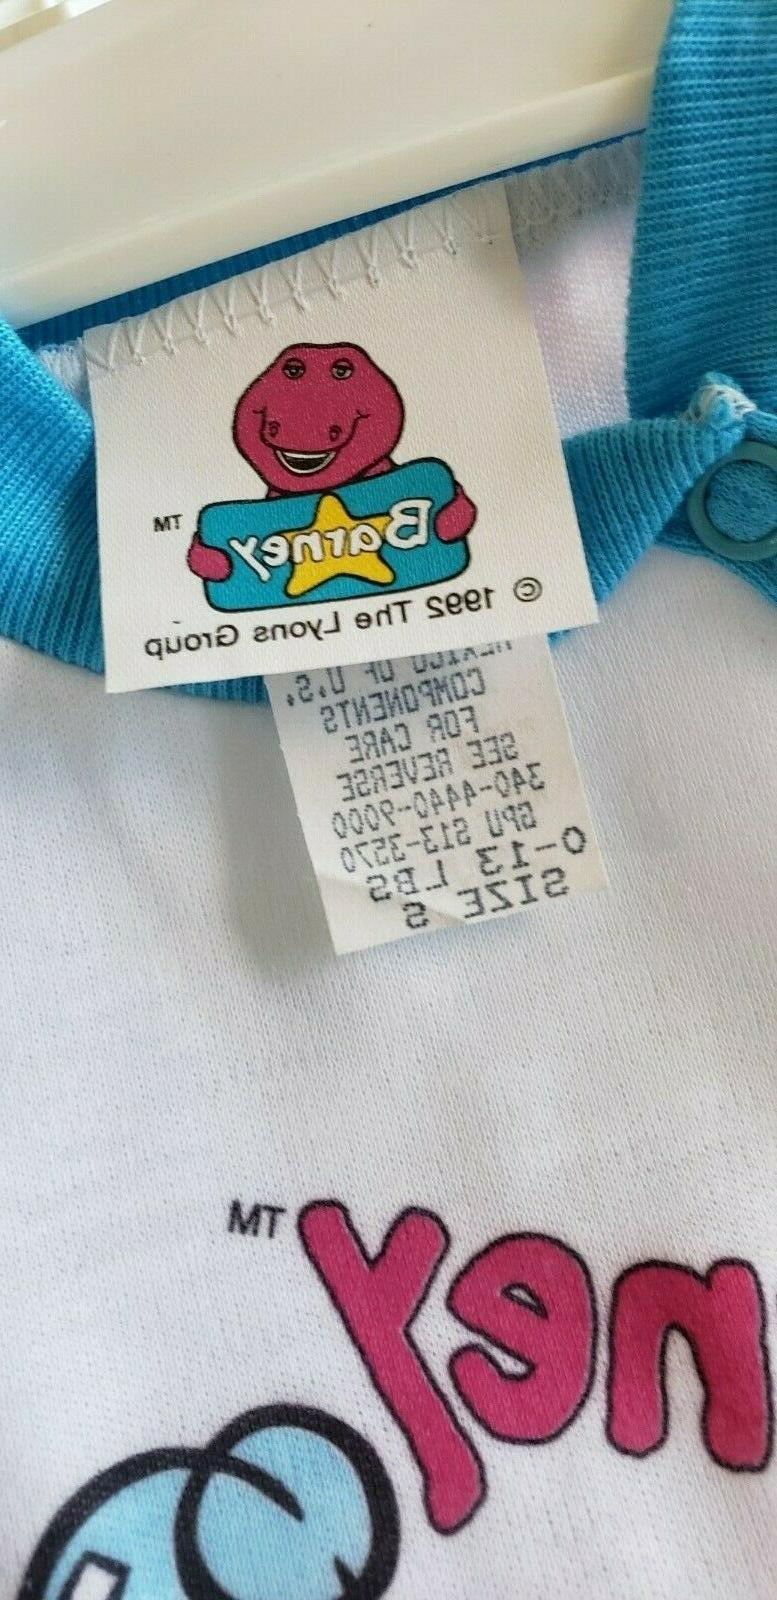 Vintage 1992 New Barney Children's Pajamas Clothing Piece Outfit S LOOK